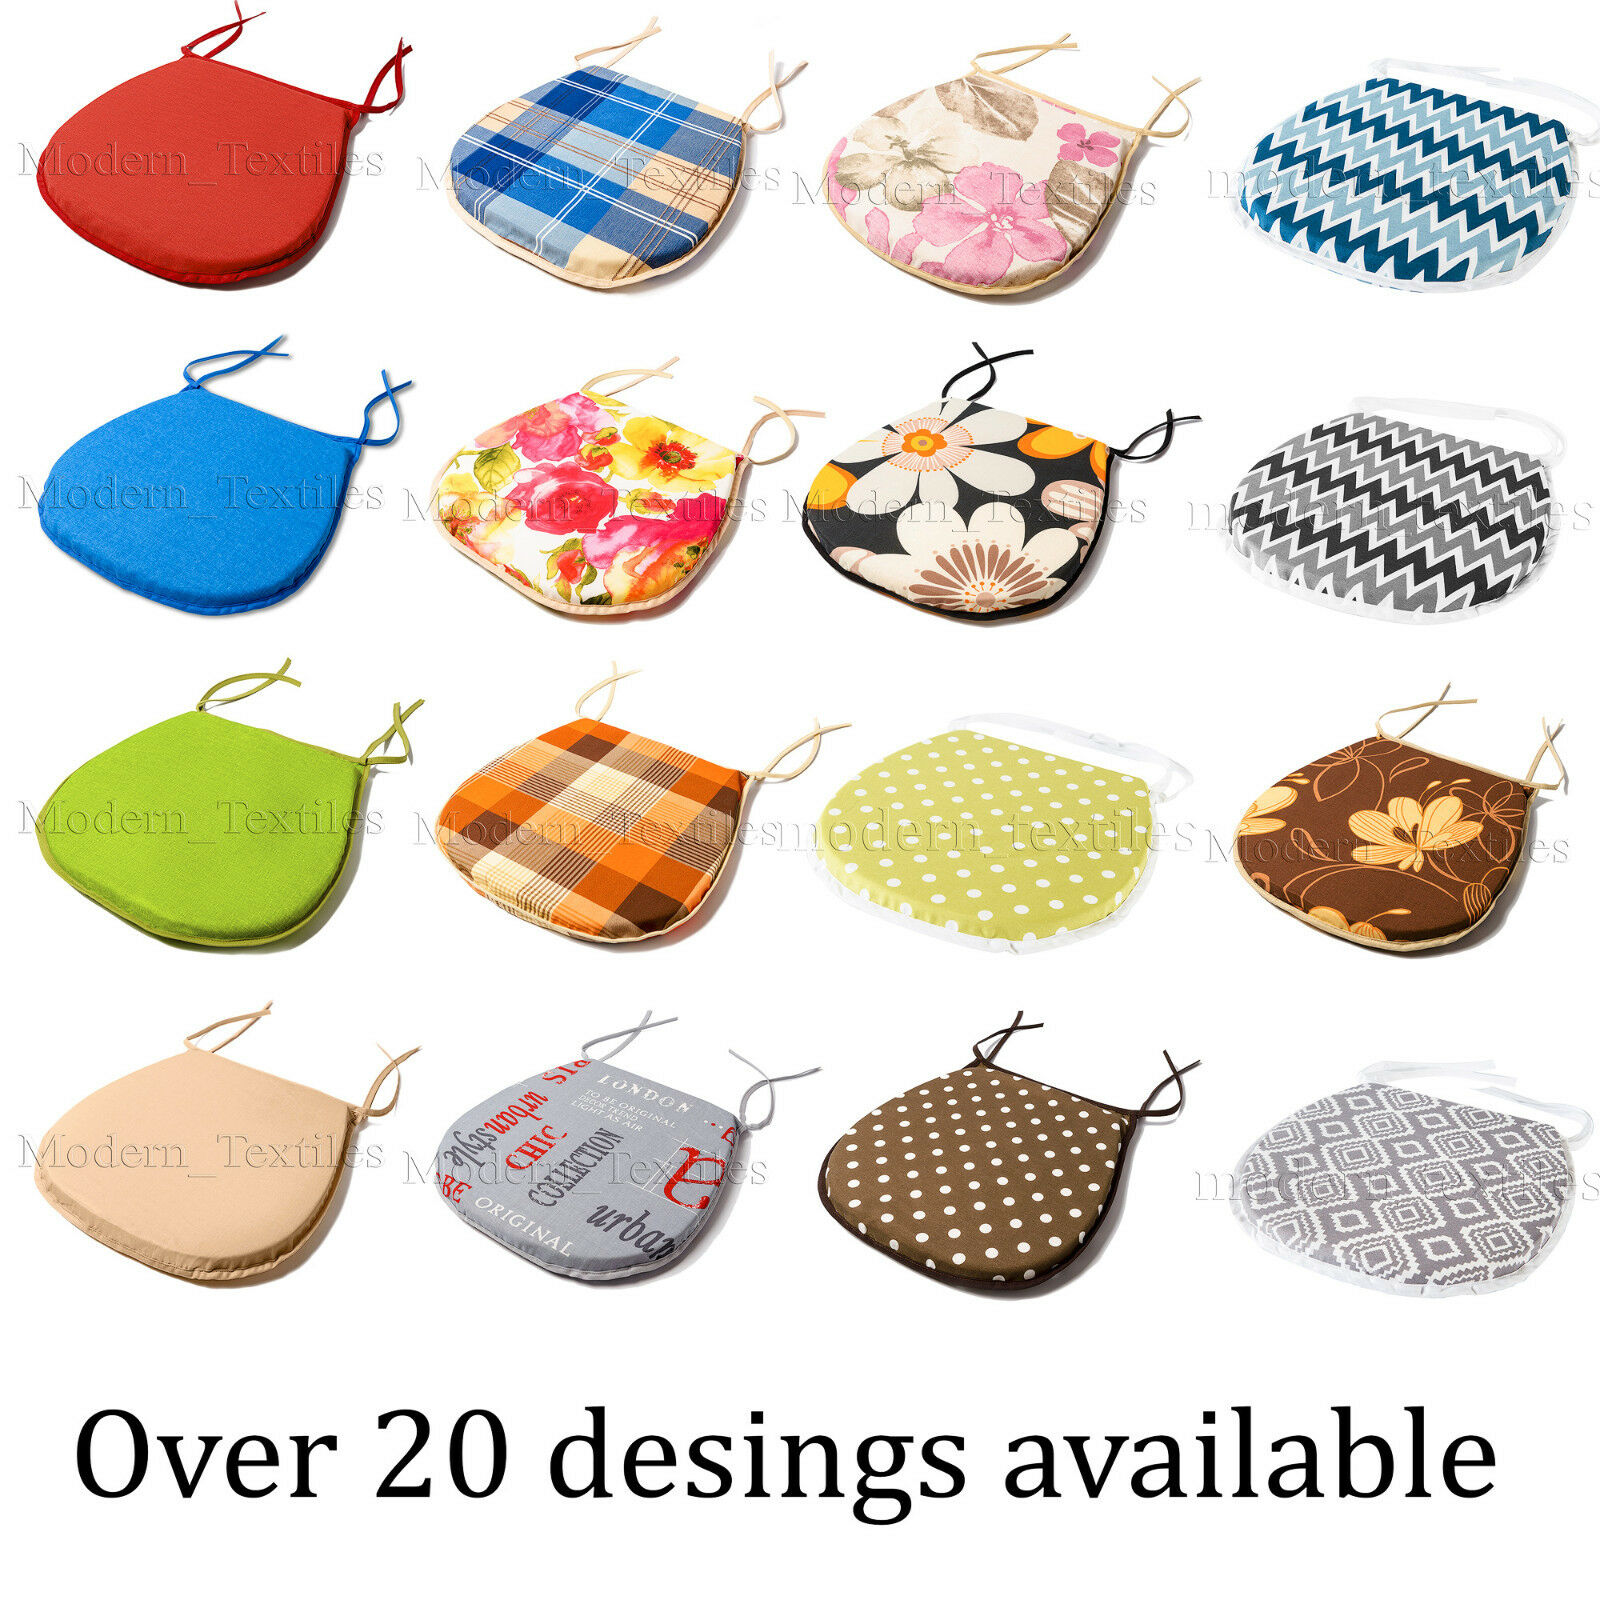 COMFORTABLE Chair Cushion Seat Pads TIE ON Garden Dining Table Kitchen MODERN!!! u2022 u00a34.19 ...